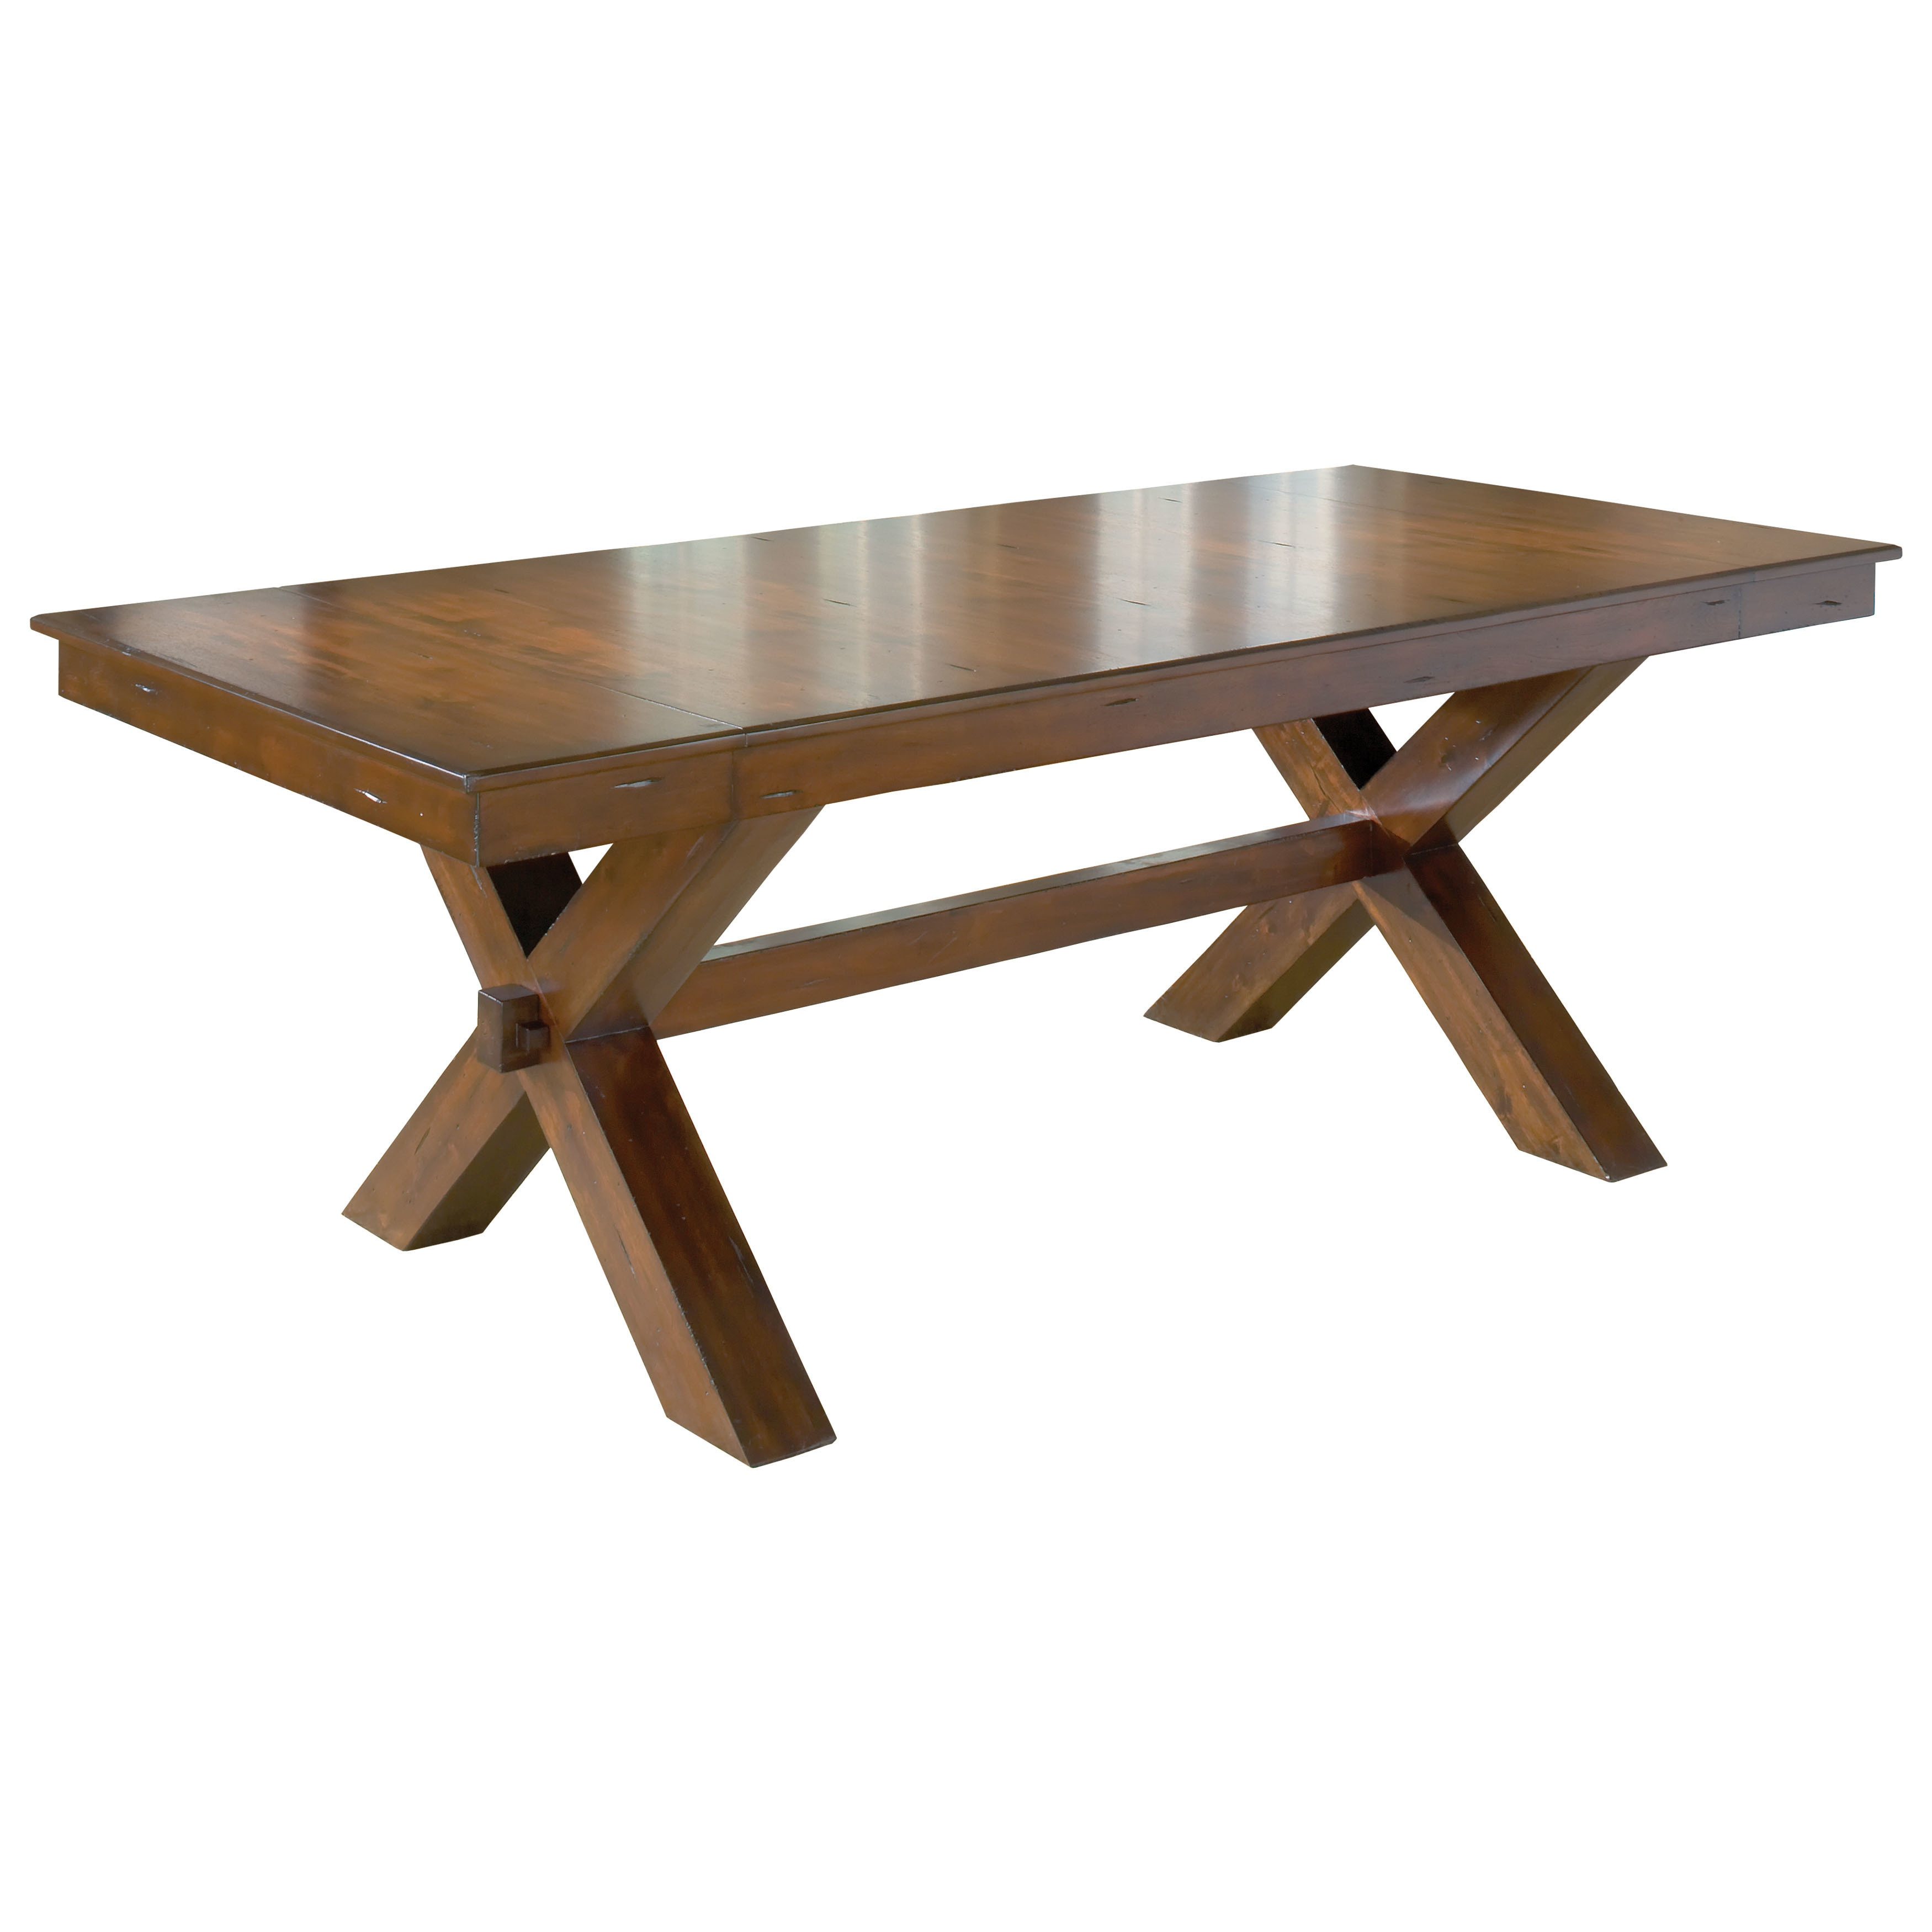 Hilale Furniture Park Avenue Dark Cherry Finish Wood Trestle Table Free Shipping Today 16295081